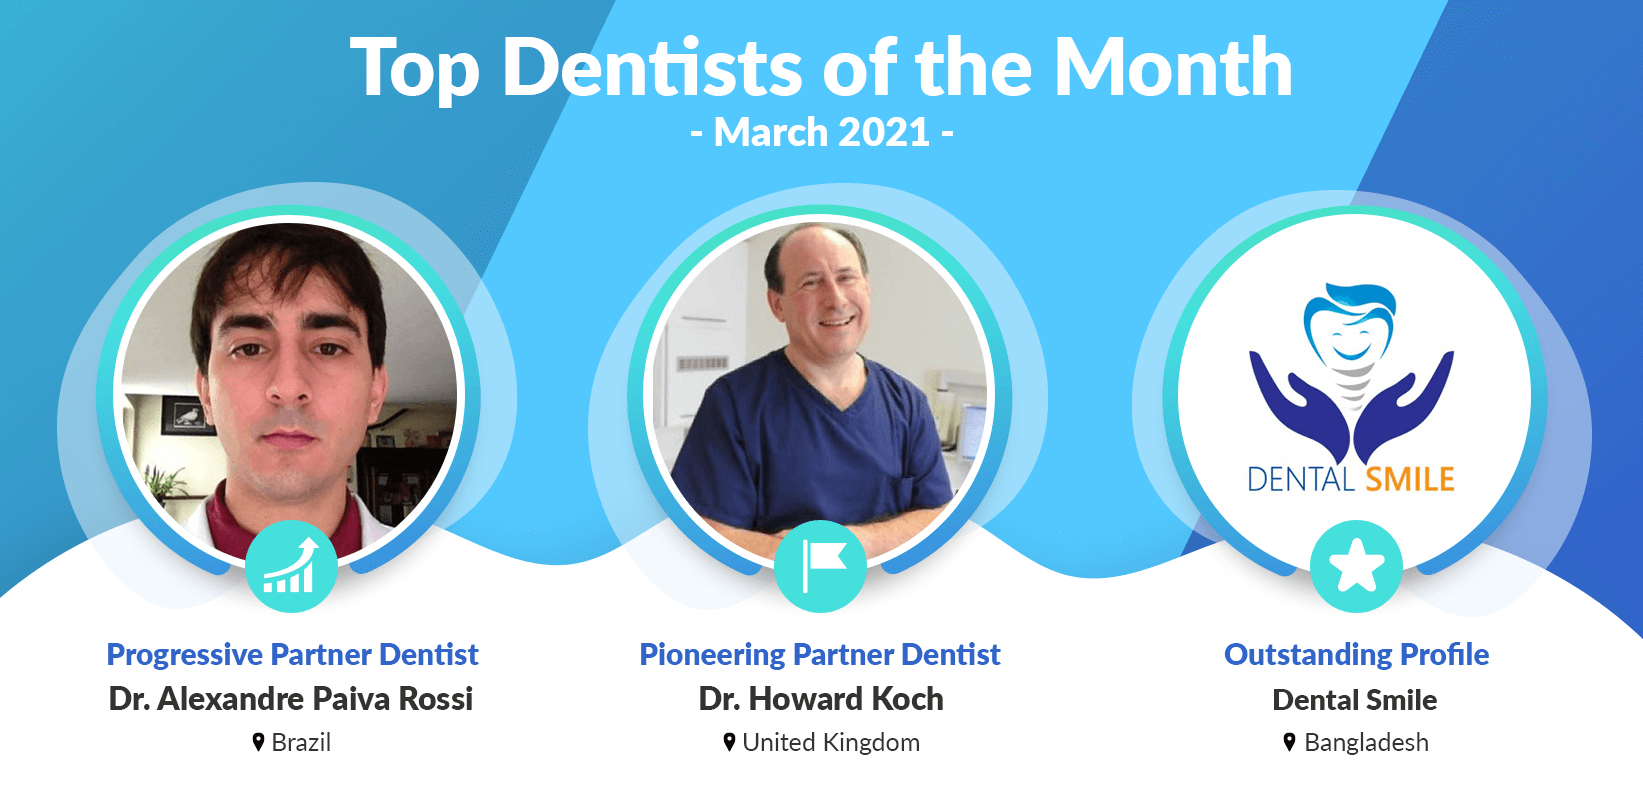 1. March Dentist of the month 2021